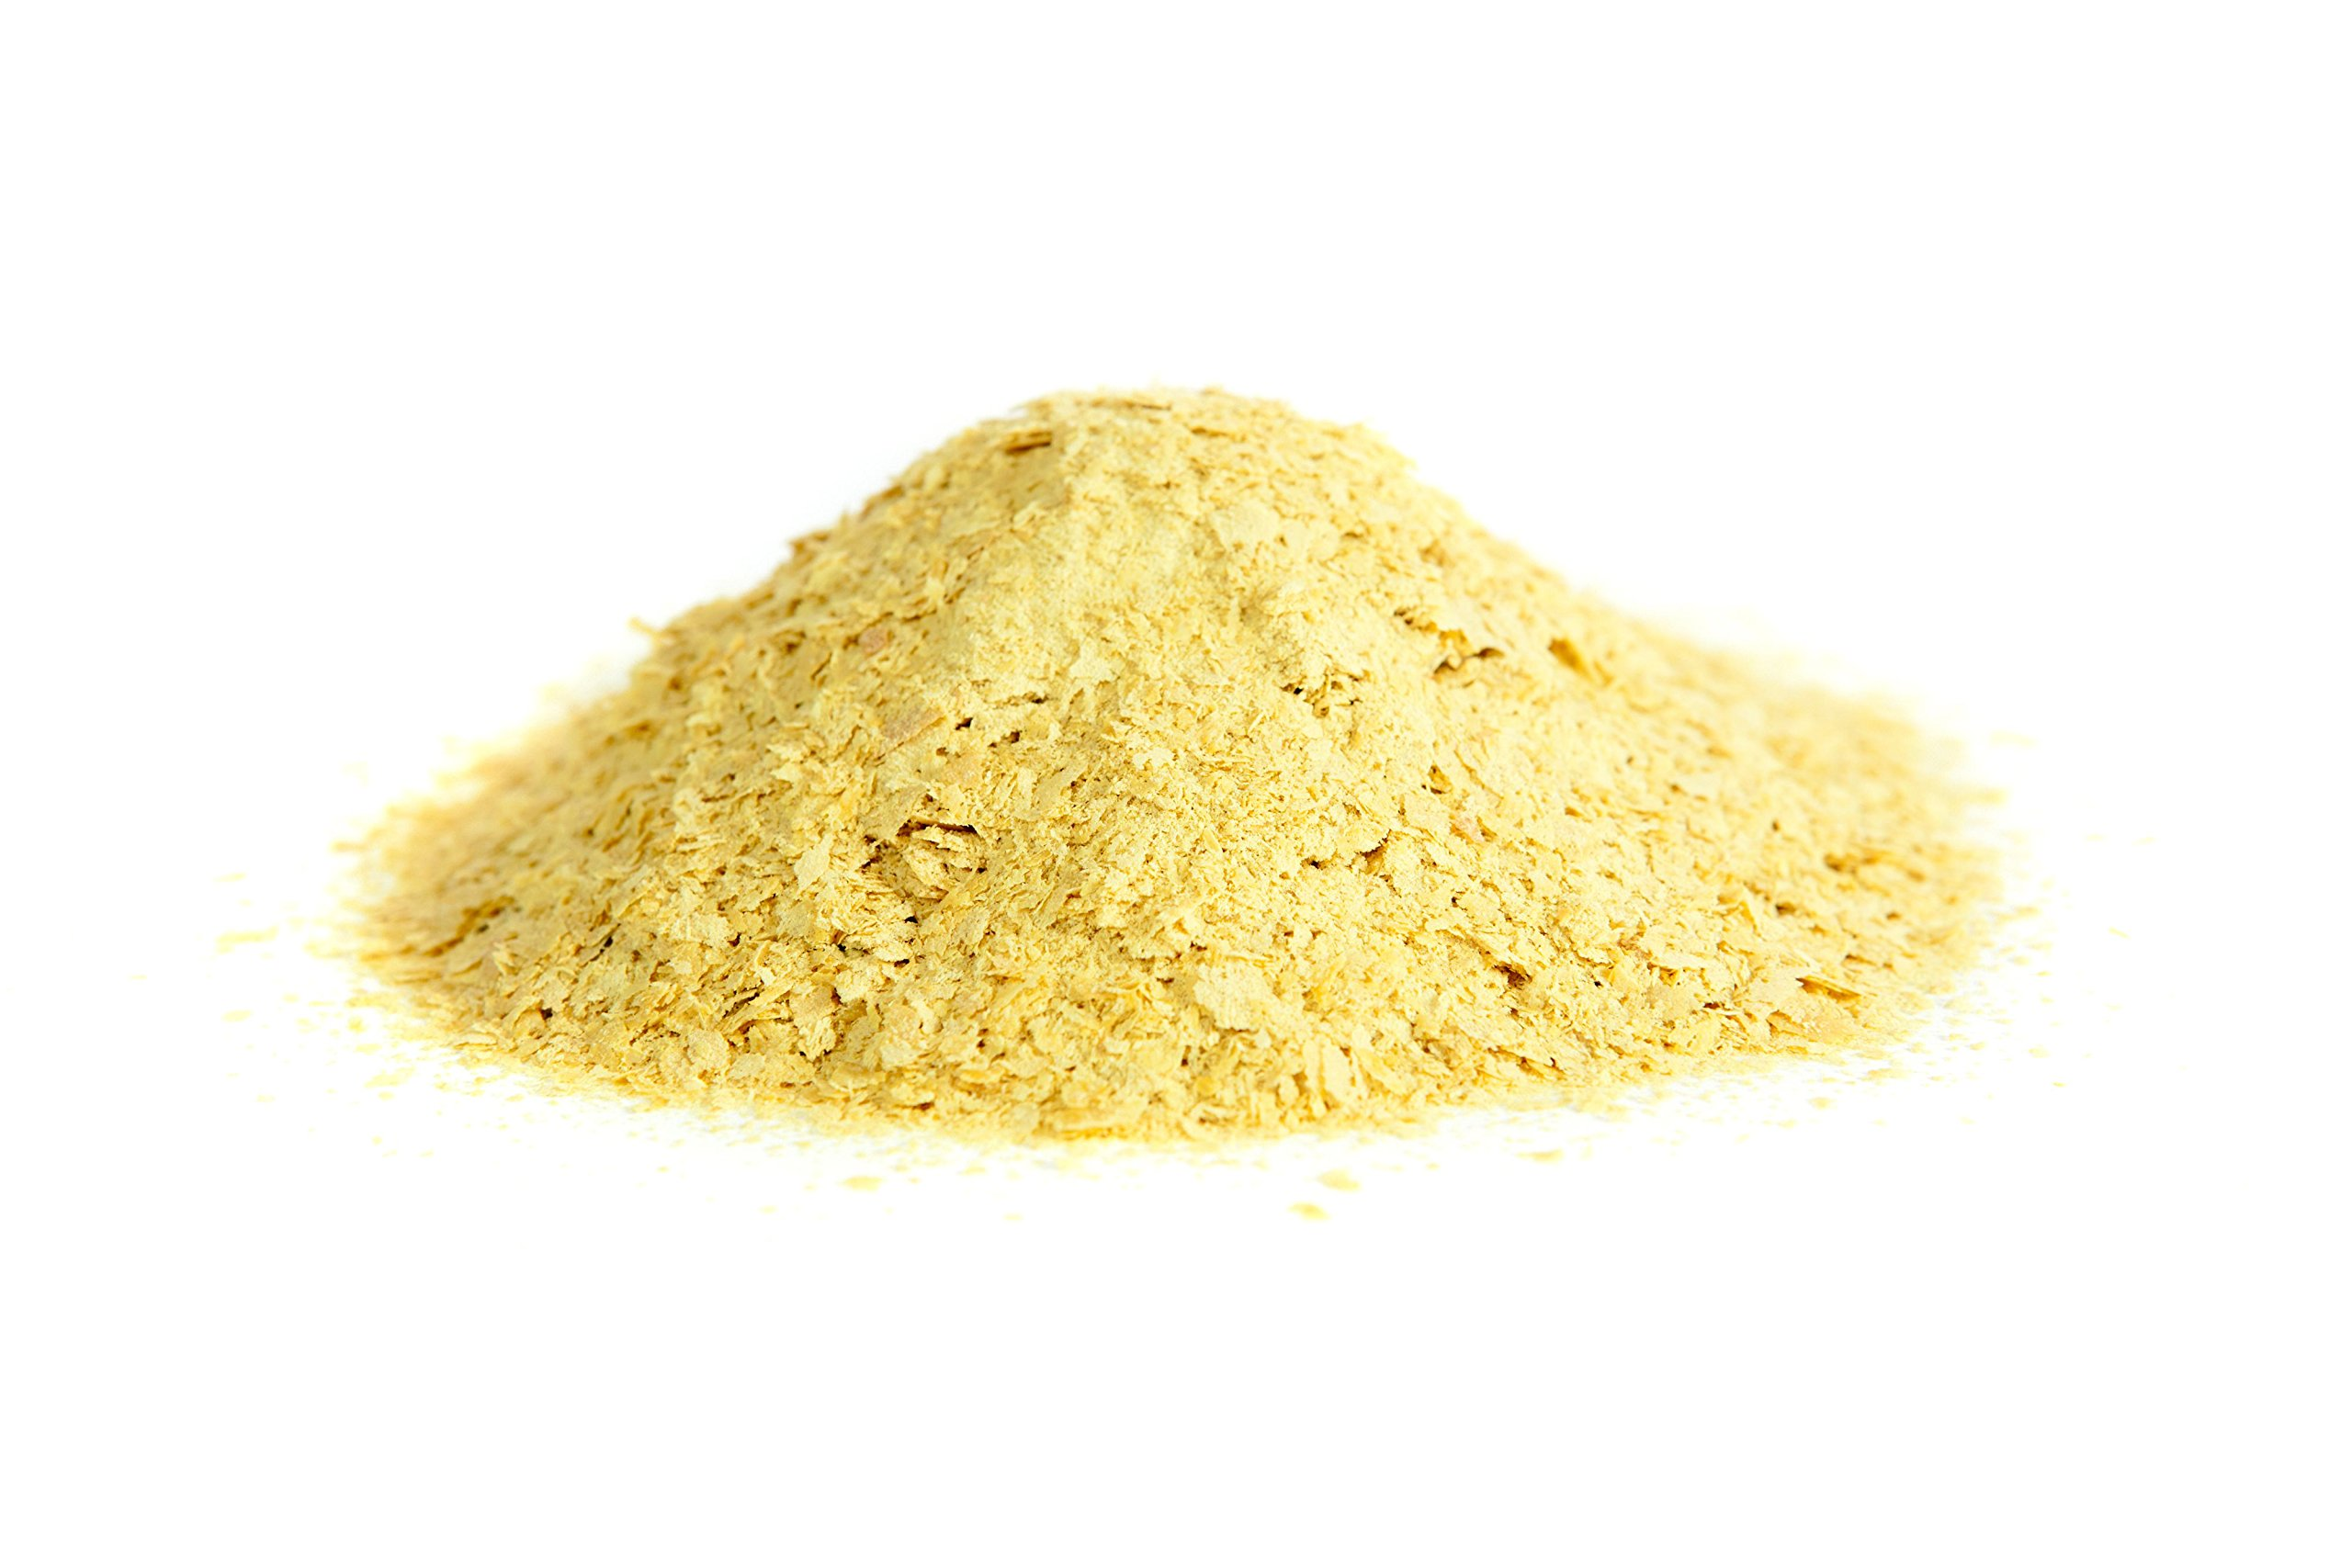 All-Natural Nutritional Yeast Flakes, Vegan, Non-GMO, High in Protein and B Vitamins, 57 servings (1 lb)